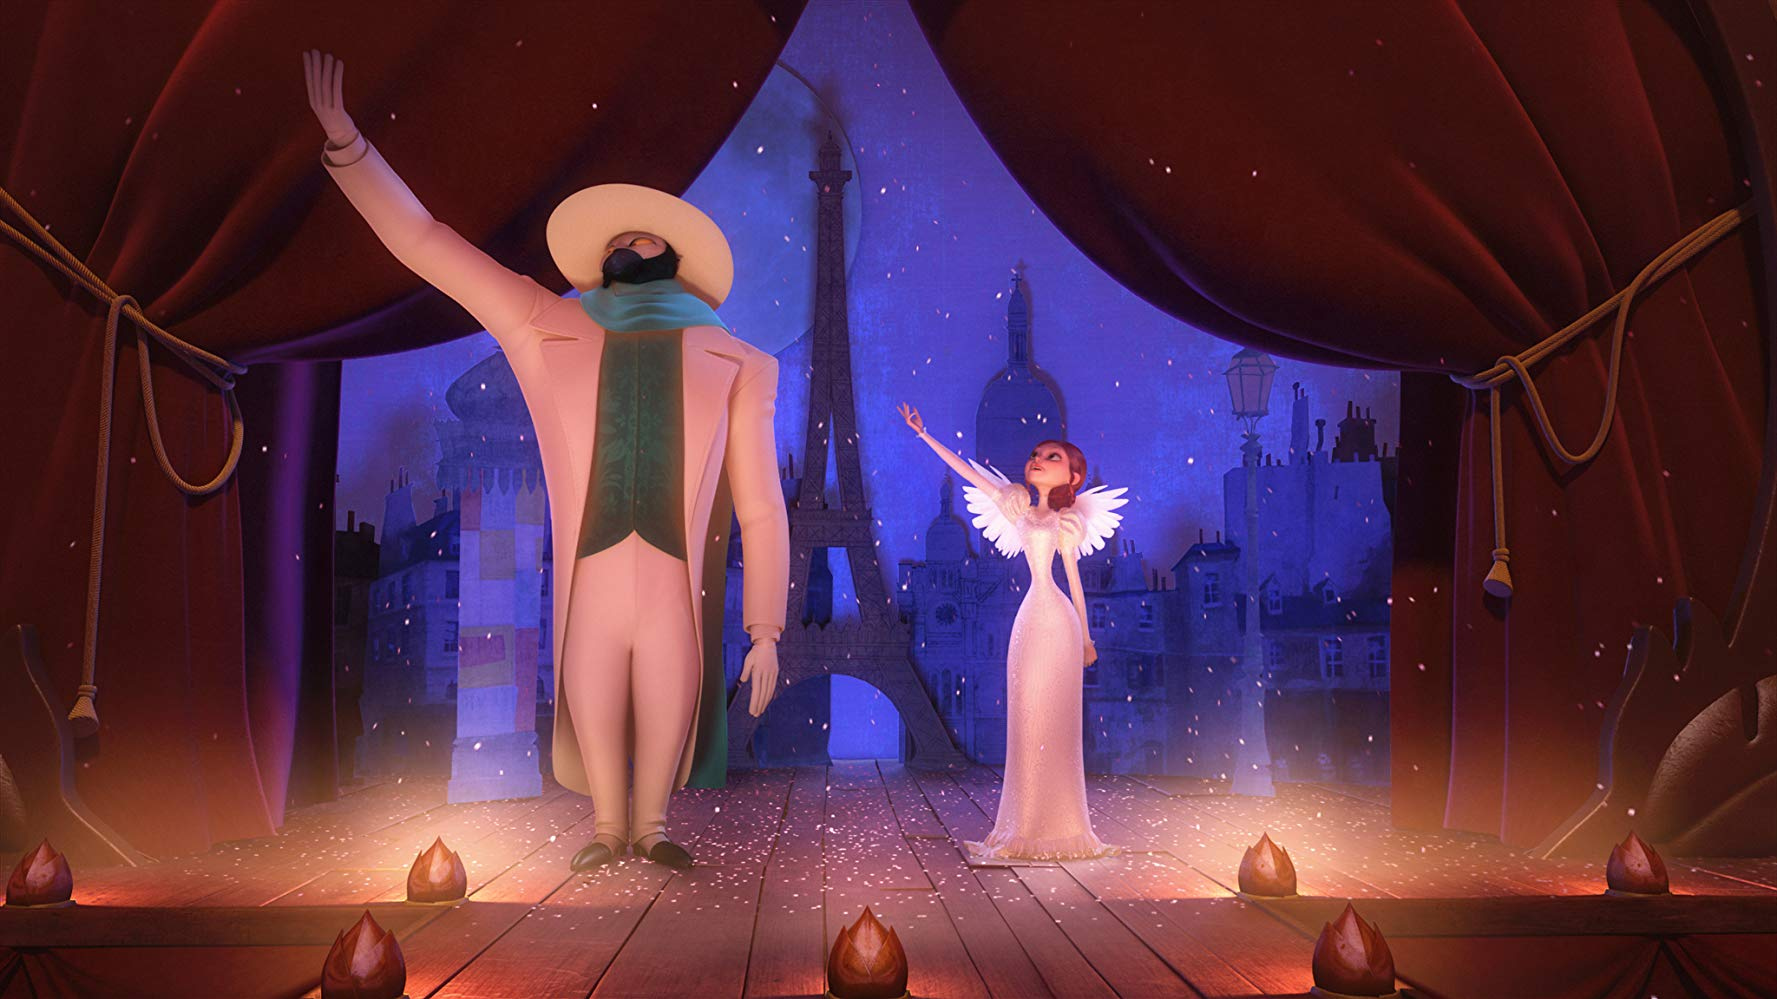 Francoeur and Lucille debut their singing act in A Monster in Paris (2011)